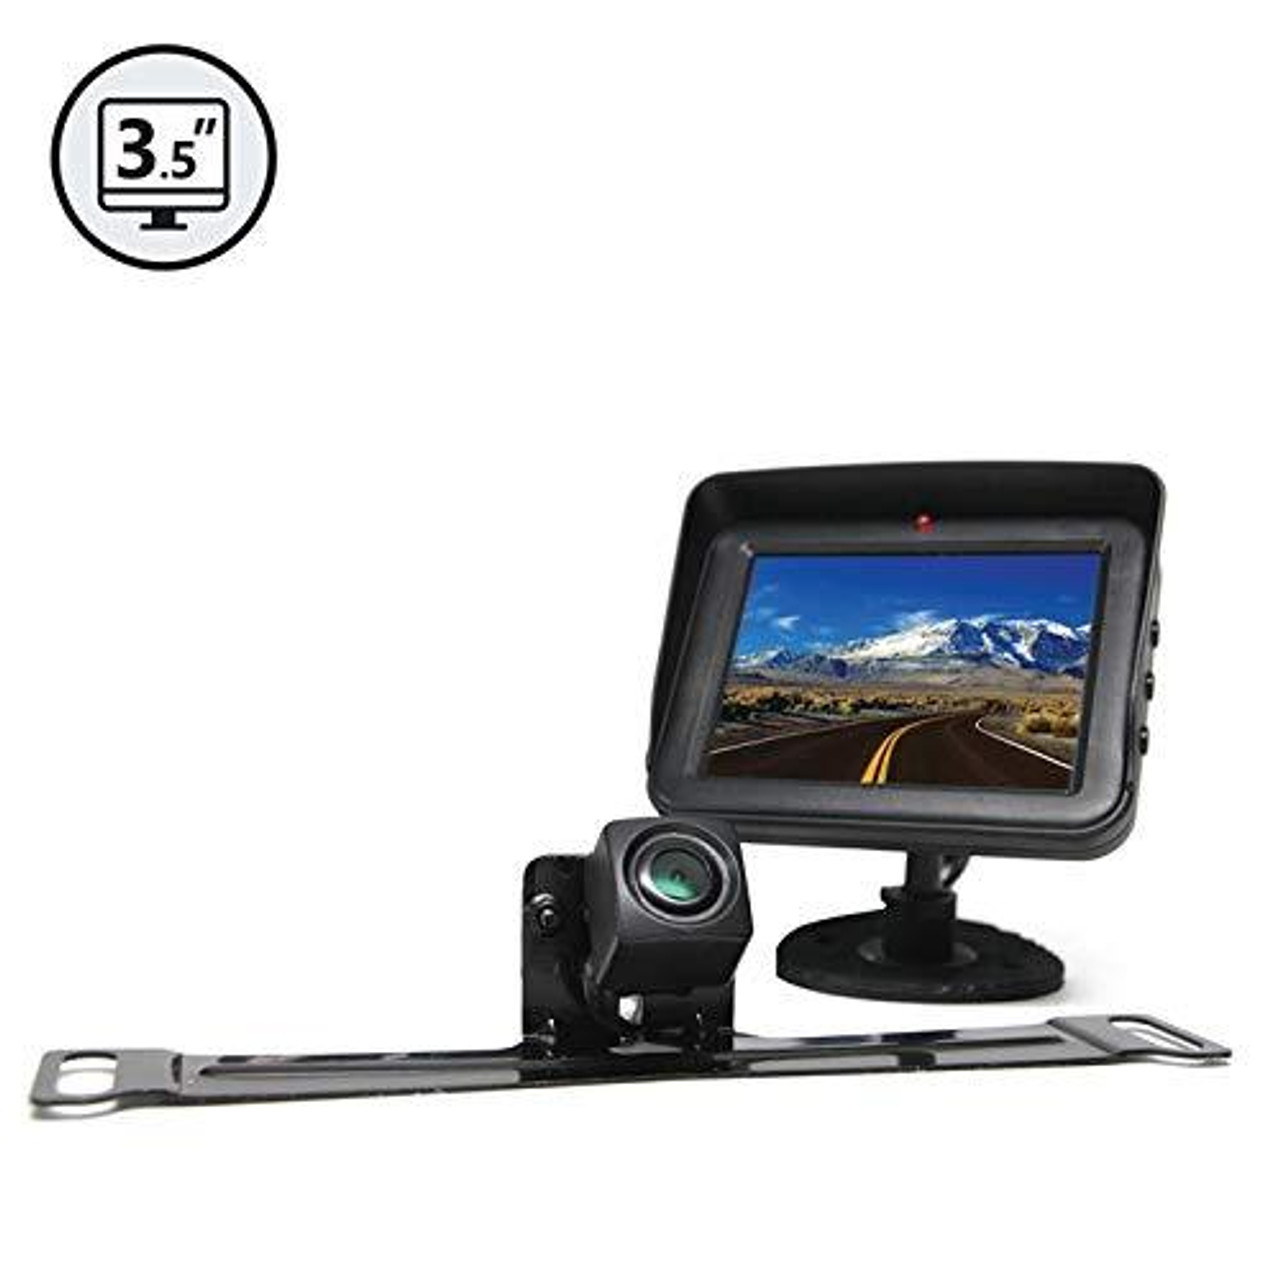 "Backup Camera System with License Plate Camera and 3.5"" Display"